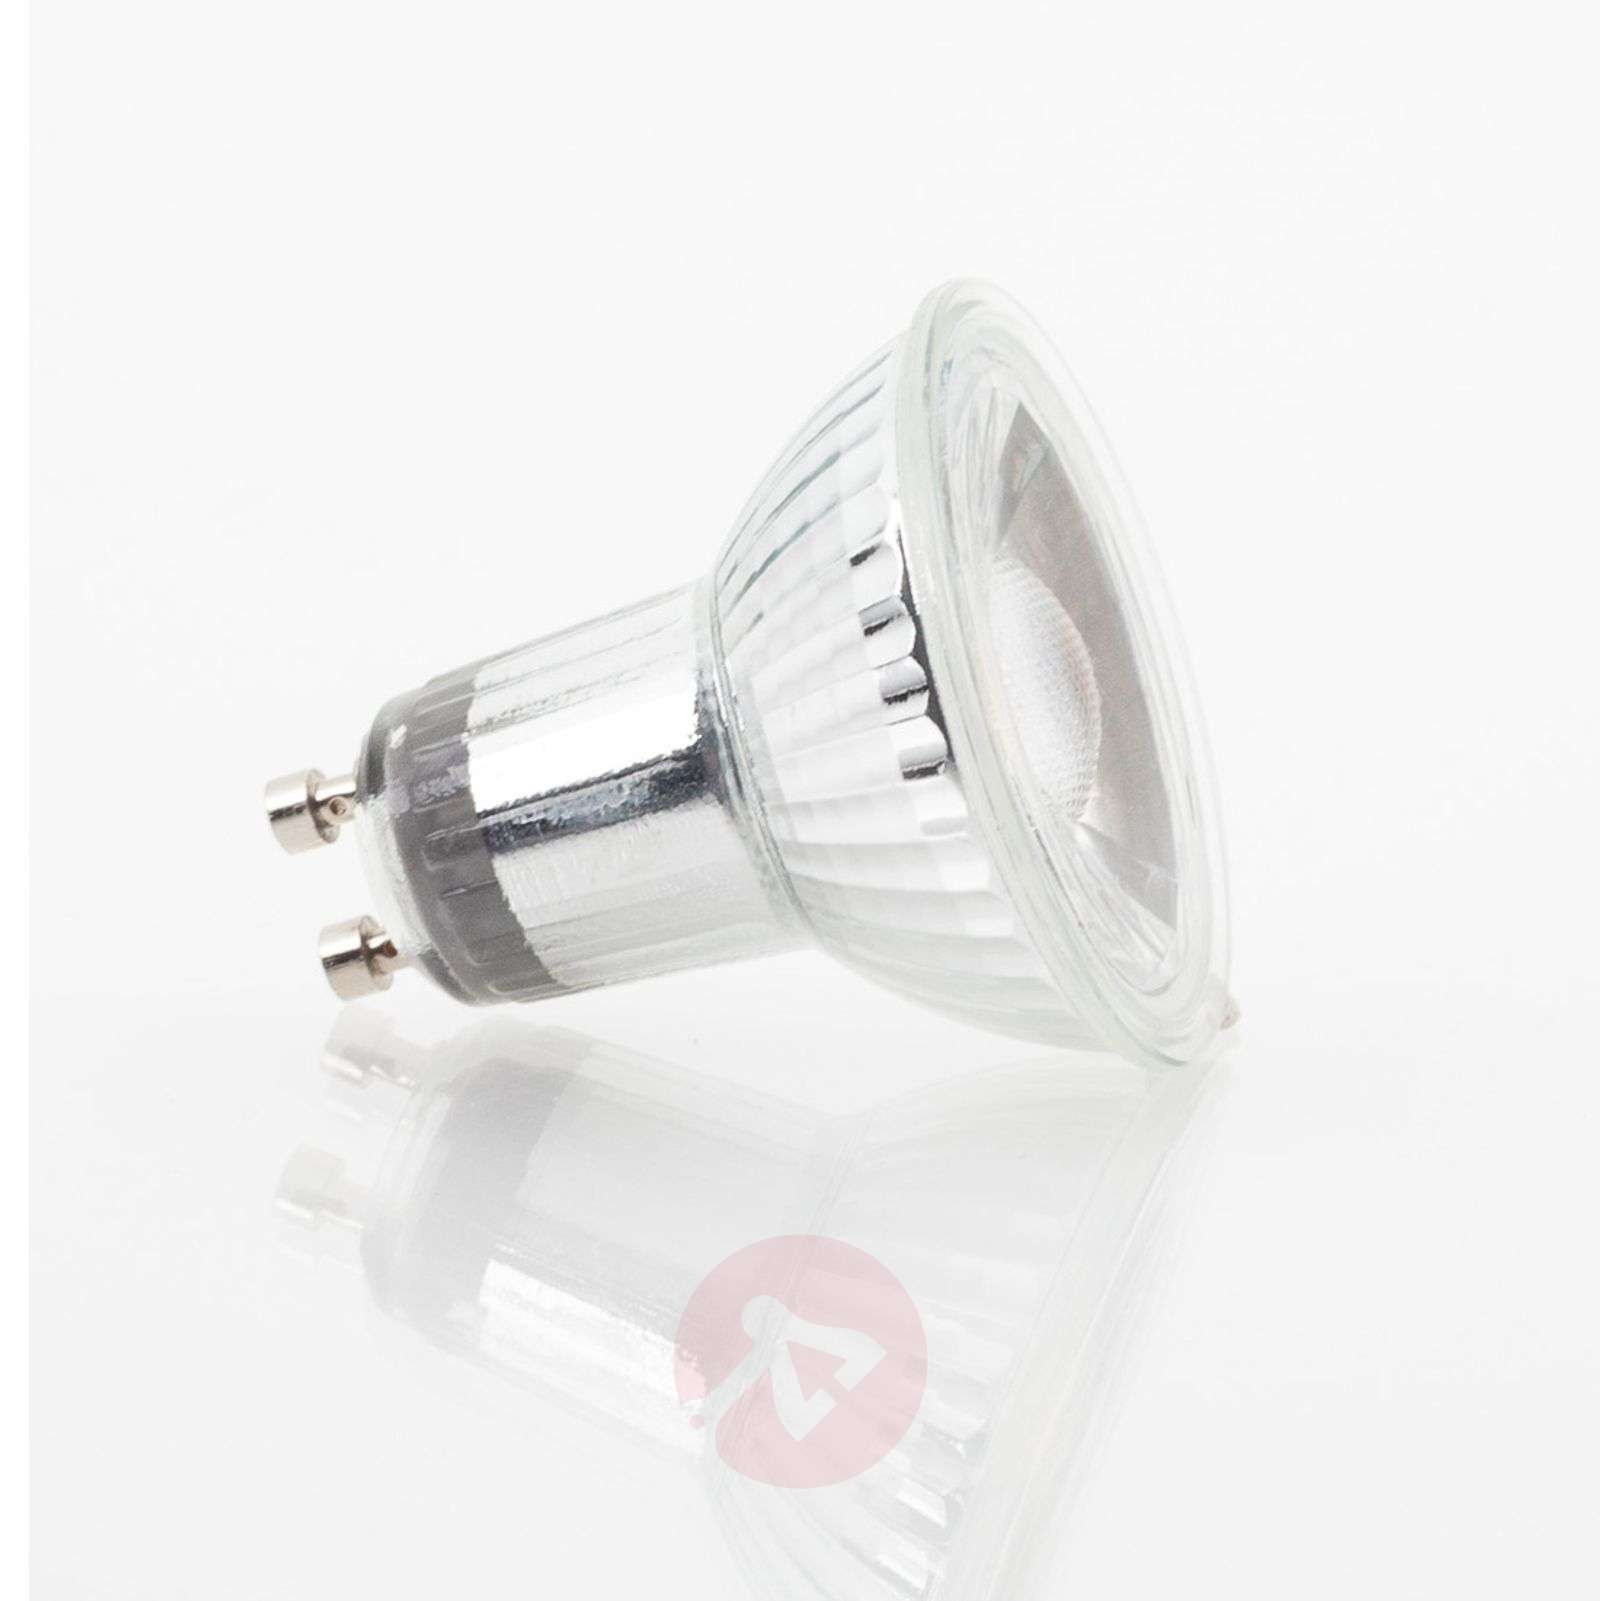 Ampoule à réflecteur LED GU10 5W 830 variable-9646006-01